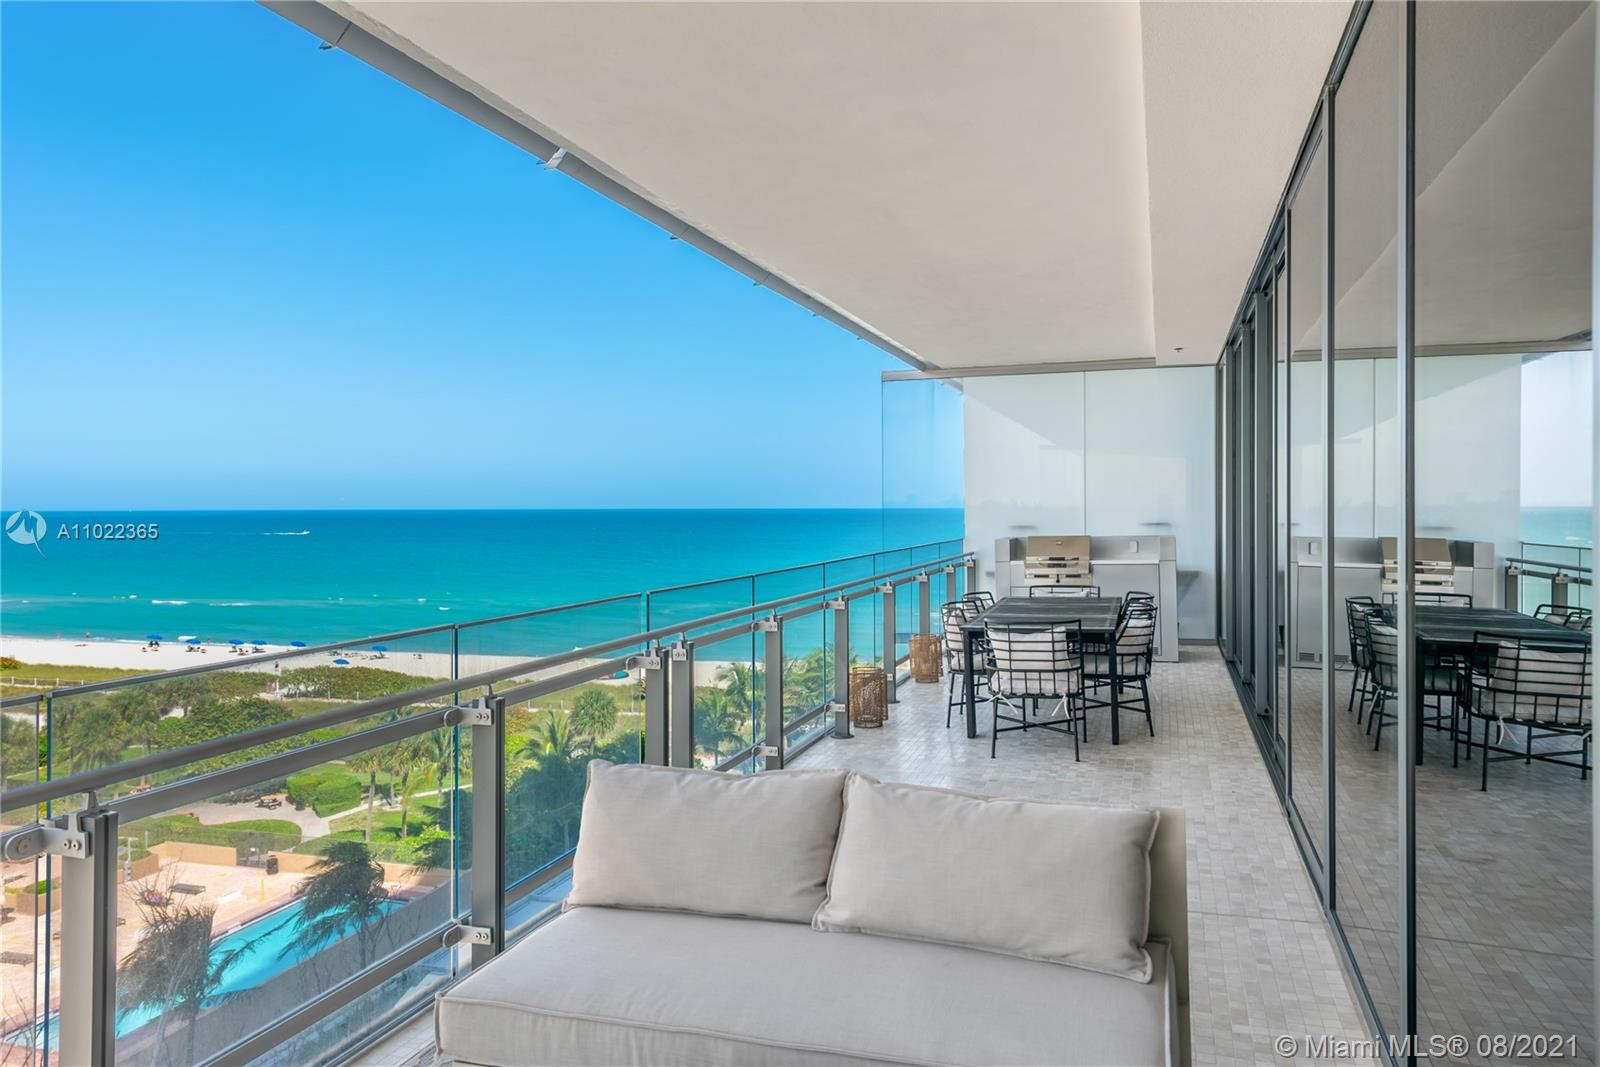 MUST SEE! Pritzker award winning architect, Renzo Piano designed building where ocean meets park in the most coveted neighborhood in Miami Beach. This is a unique custom designed floor plan with HUGE closets and a custom bathroom. Nothing has been spared, designer finishes from wallpaper to build-ins. Full service with security, concierge, spa, gym, restaurant and wine bar. Furnishing is by separate negotiation.